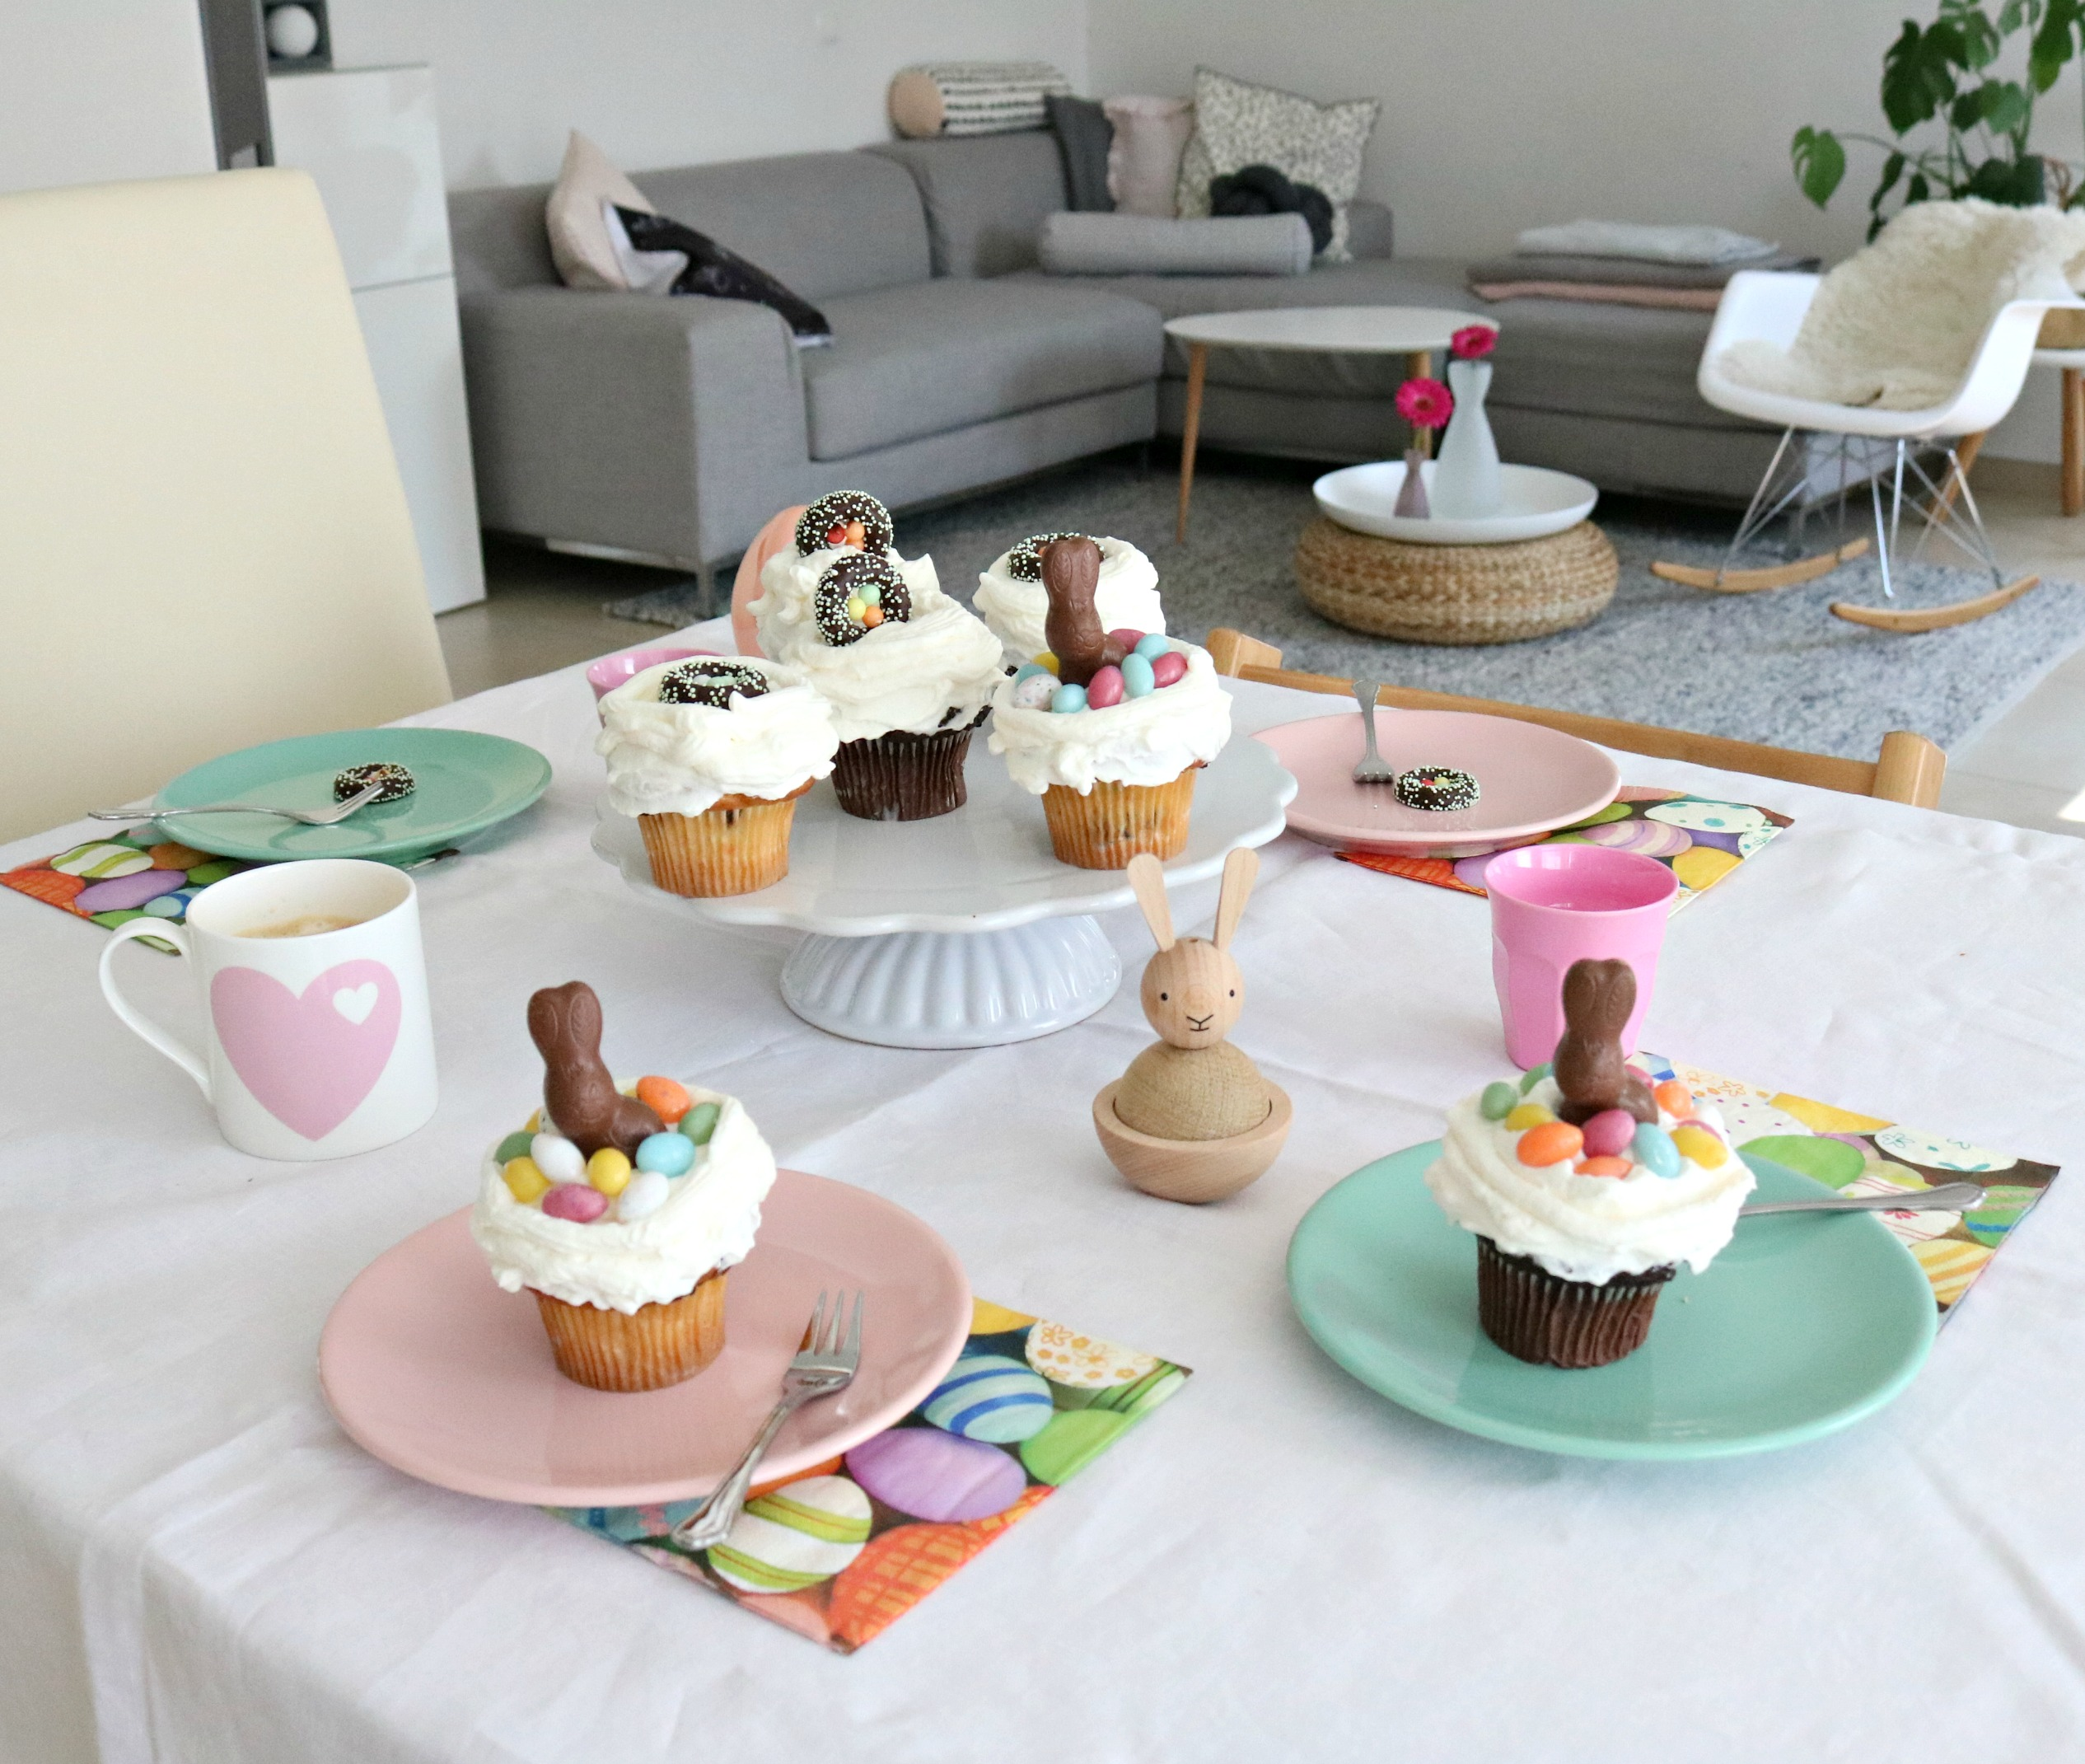 schnelle Oster-Cupcakes